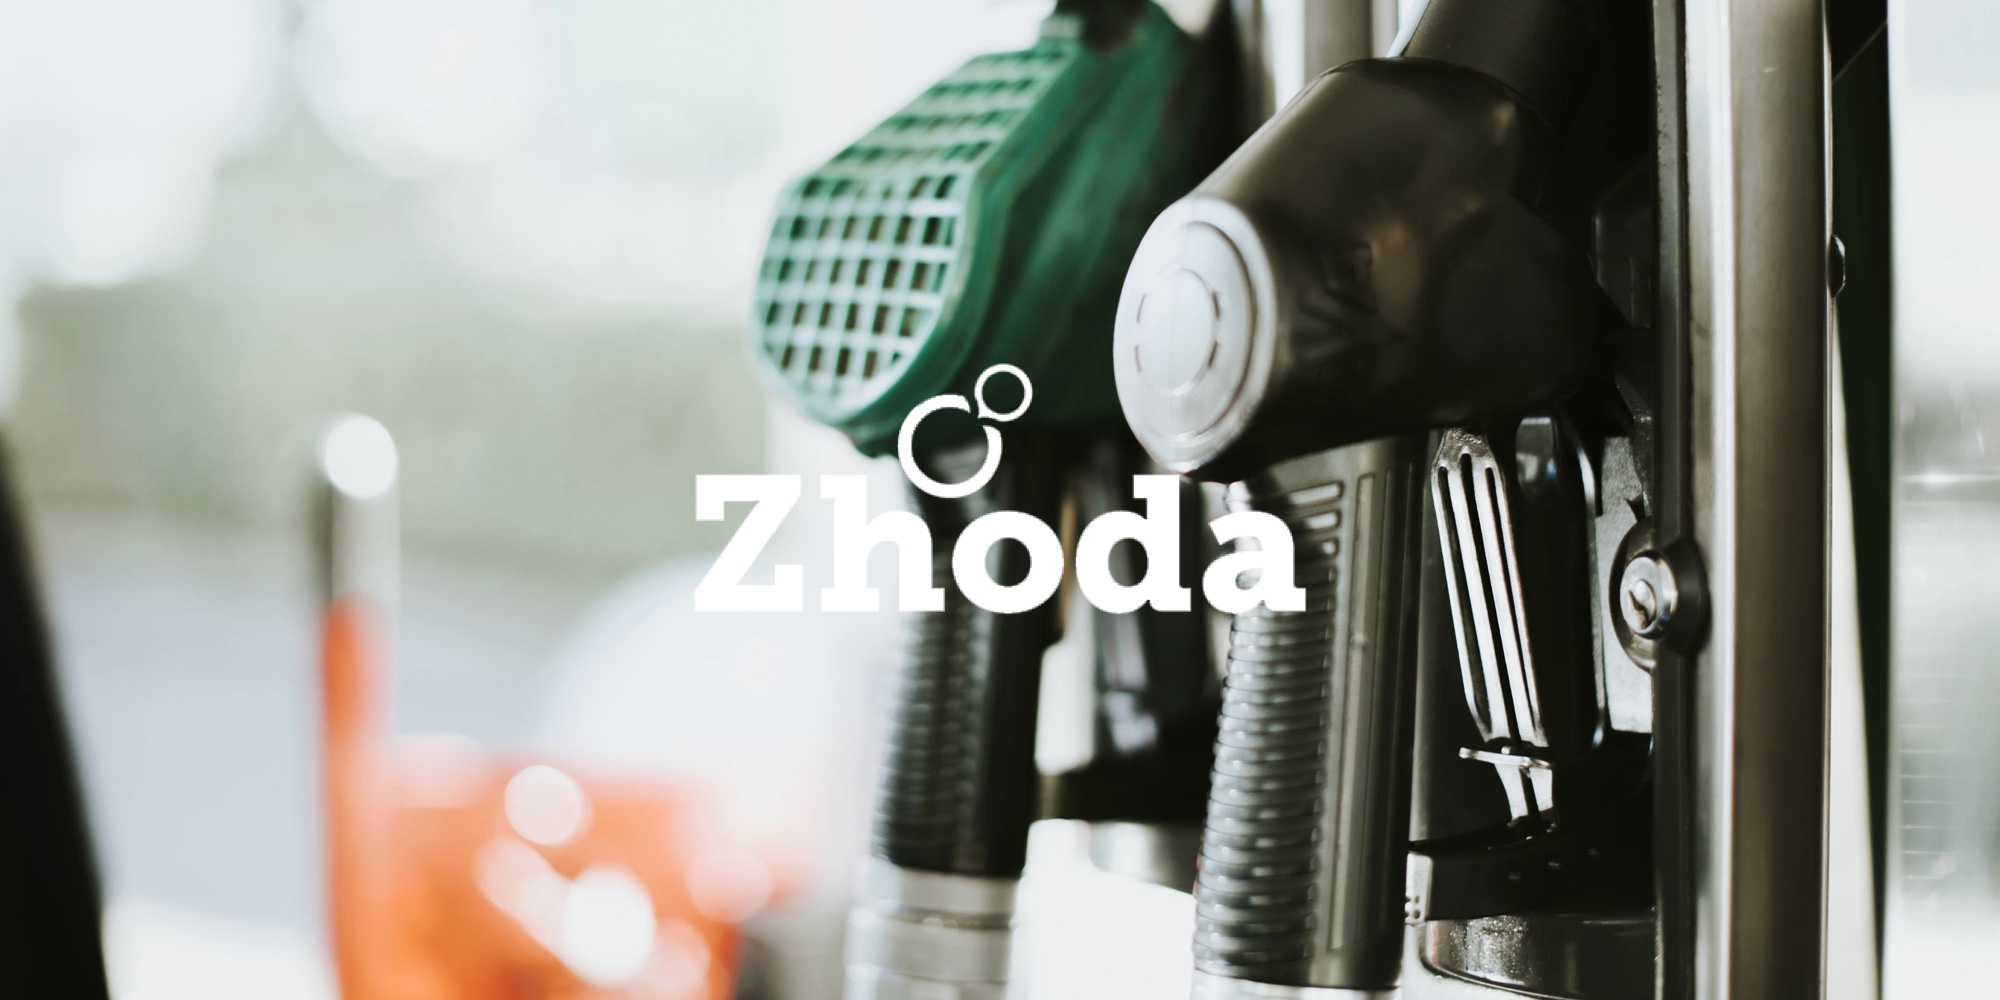 Ayond releases new Zhoda Petroleum site